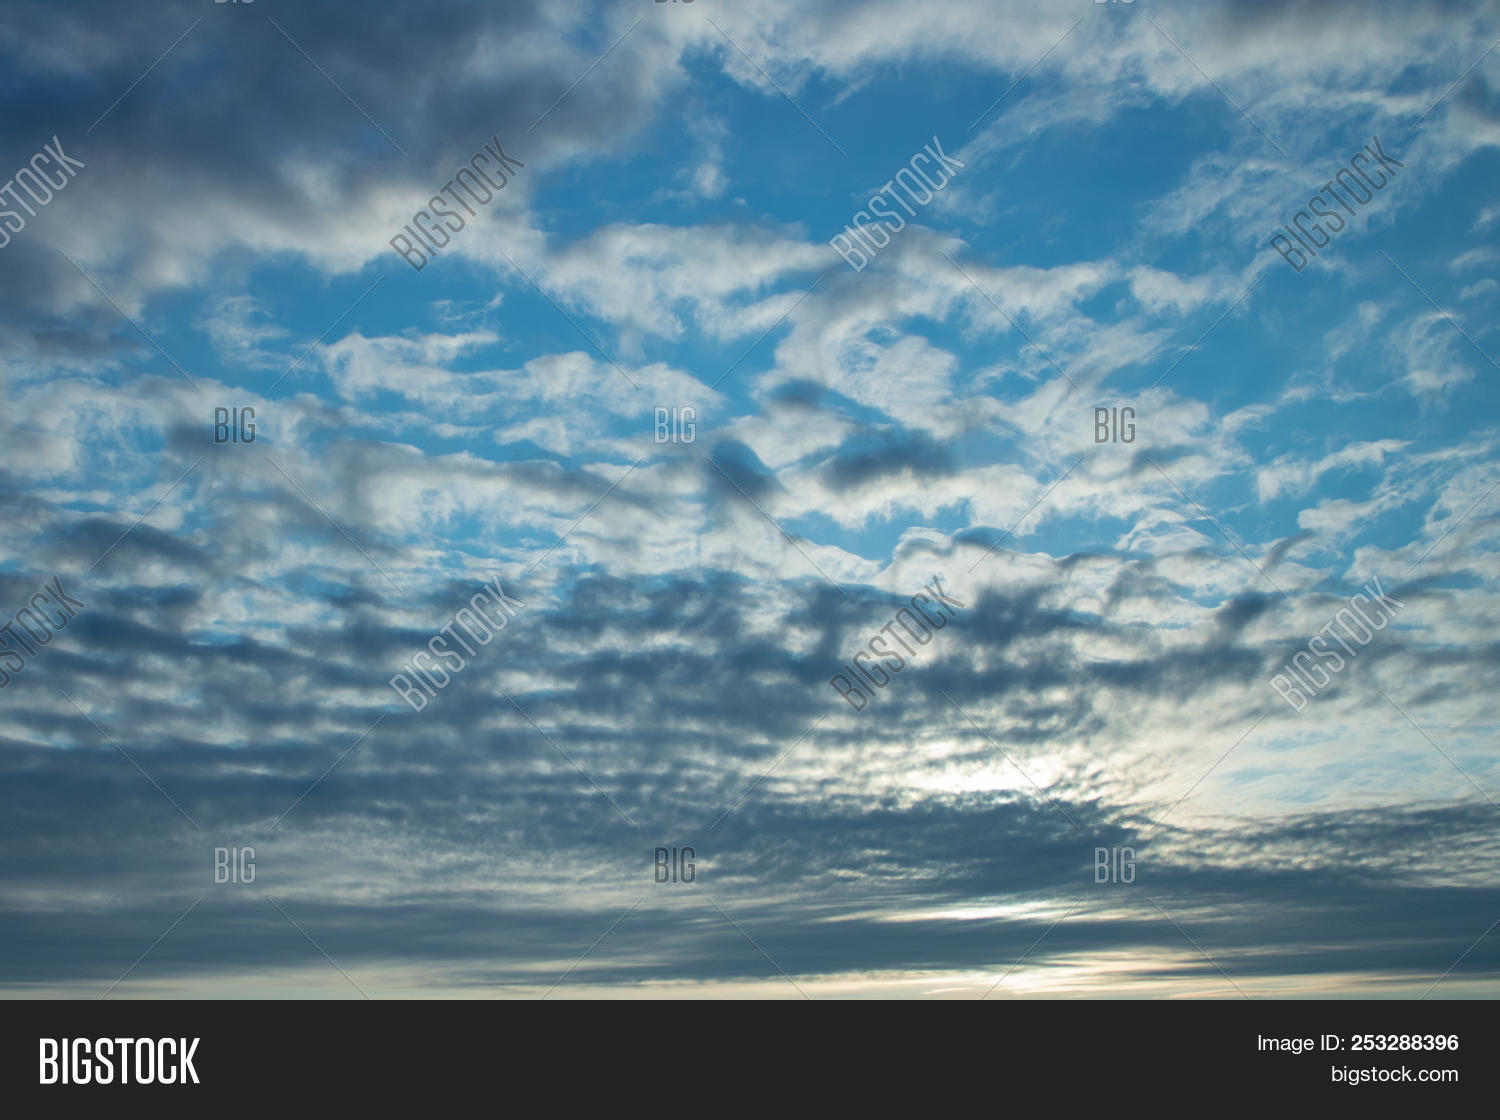 air,atmosphere,background,beautiful,beauty,blue,bright,clear,cloud,cloudscape,cloudy,color,day,design,dramatic,environment,heaven,high,light,meteorology,natural,nature,outdoor,pattern,peace,sky,space,stratocumulus,summer,sunlight,sunny,sunset,texture,view,weather,white